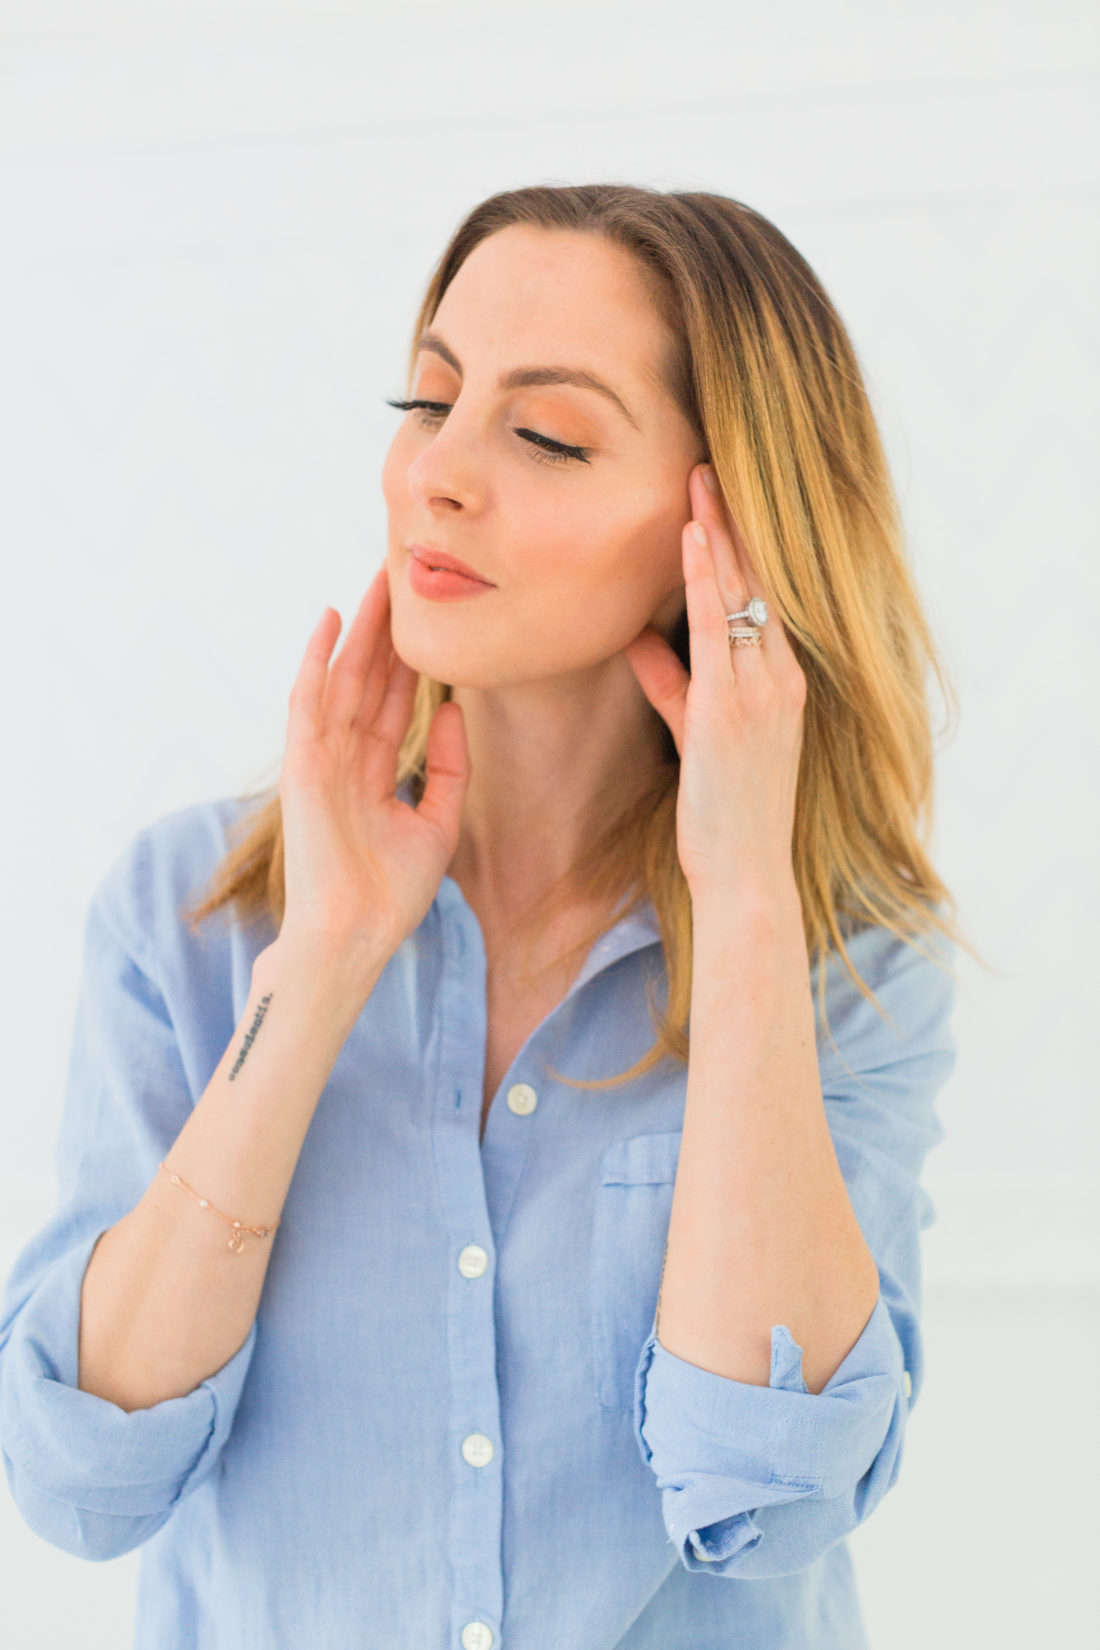 Eva Amurri Martino wears a light blue shirtdress and blends in her foundation for a flawless and glowing makeup look